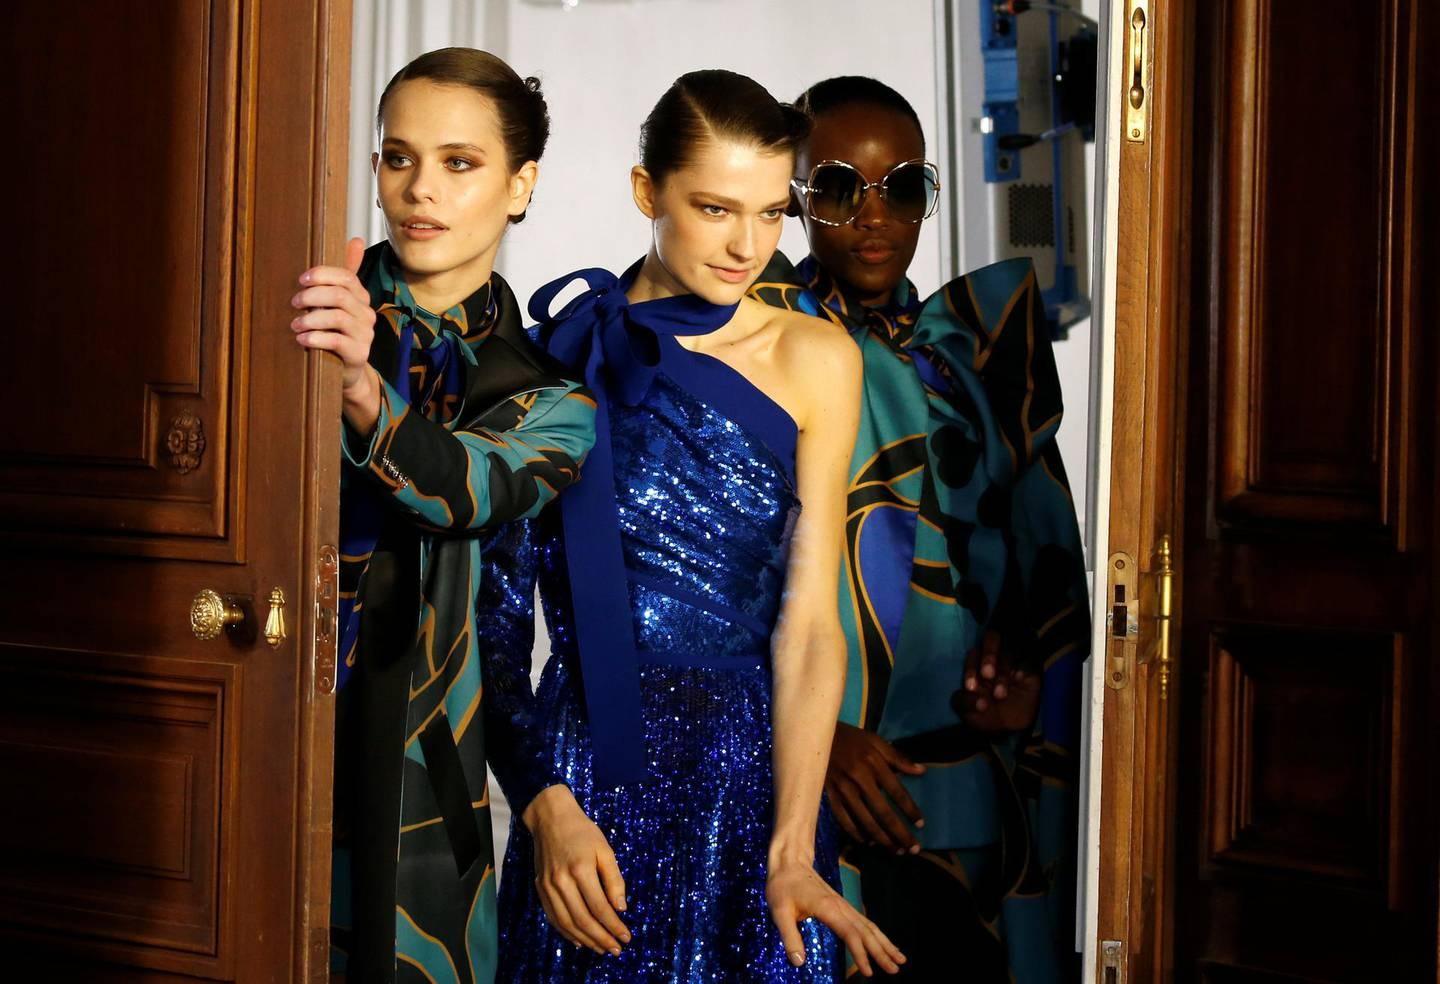 Models pose at the backstage before the show of designer Elie Saab as part of his Fall/Winter 2019-2020 women's ready-to-wear collection show during Paris Fashion Week in Paris, France, March 2, 2019. REUTERS/Regis Duvignau